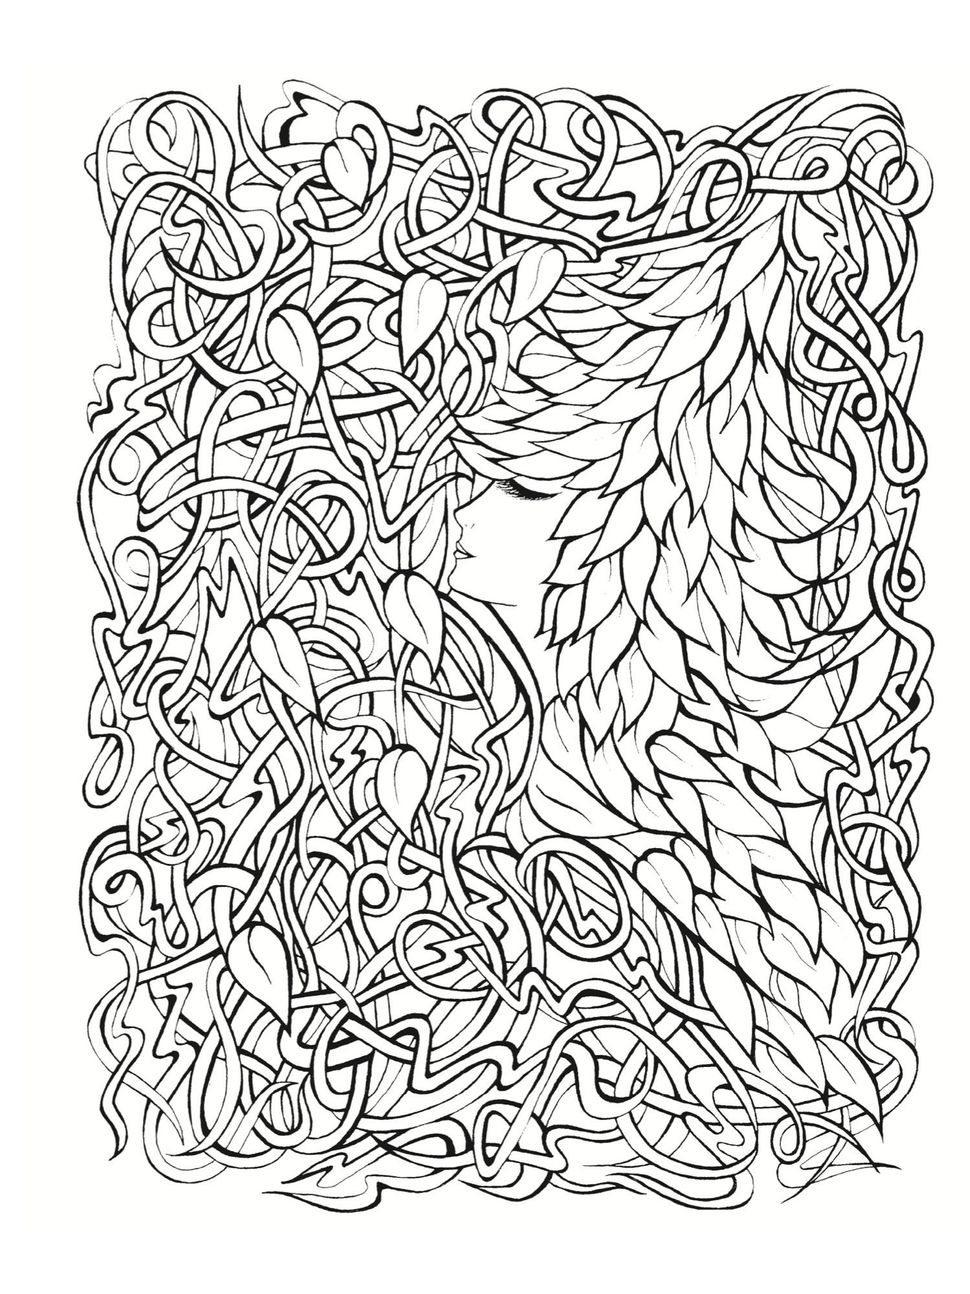 """<a href=""""http://www.amazon.com/Creative-Haven-Fanciful-Faces-Coloring/dp/0486779351/ref=sr_1_14?ie=UTF8&keywords=creative+hav"""